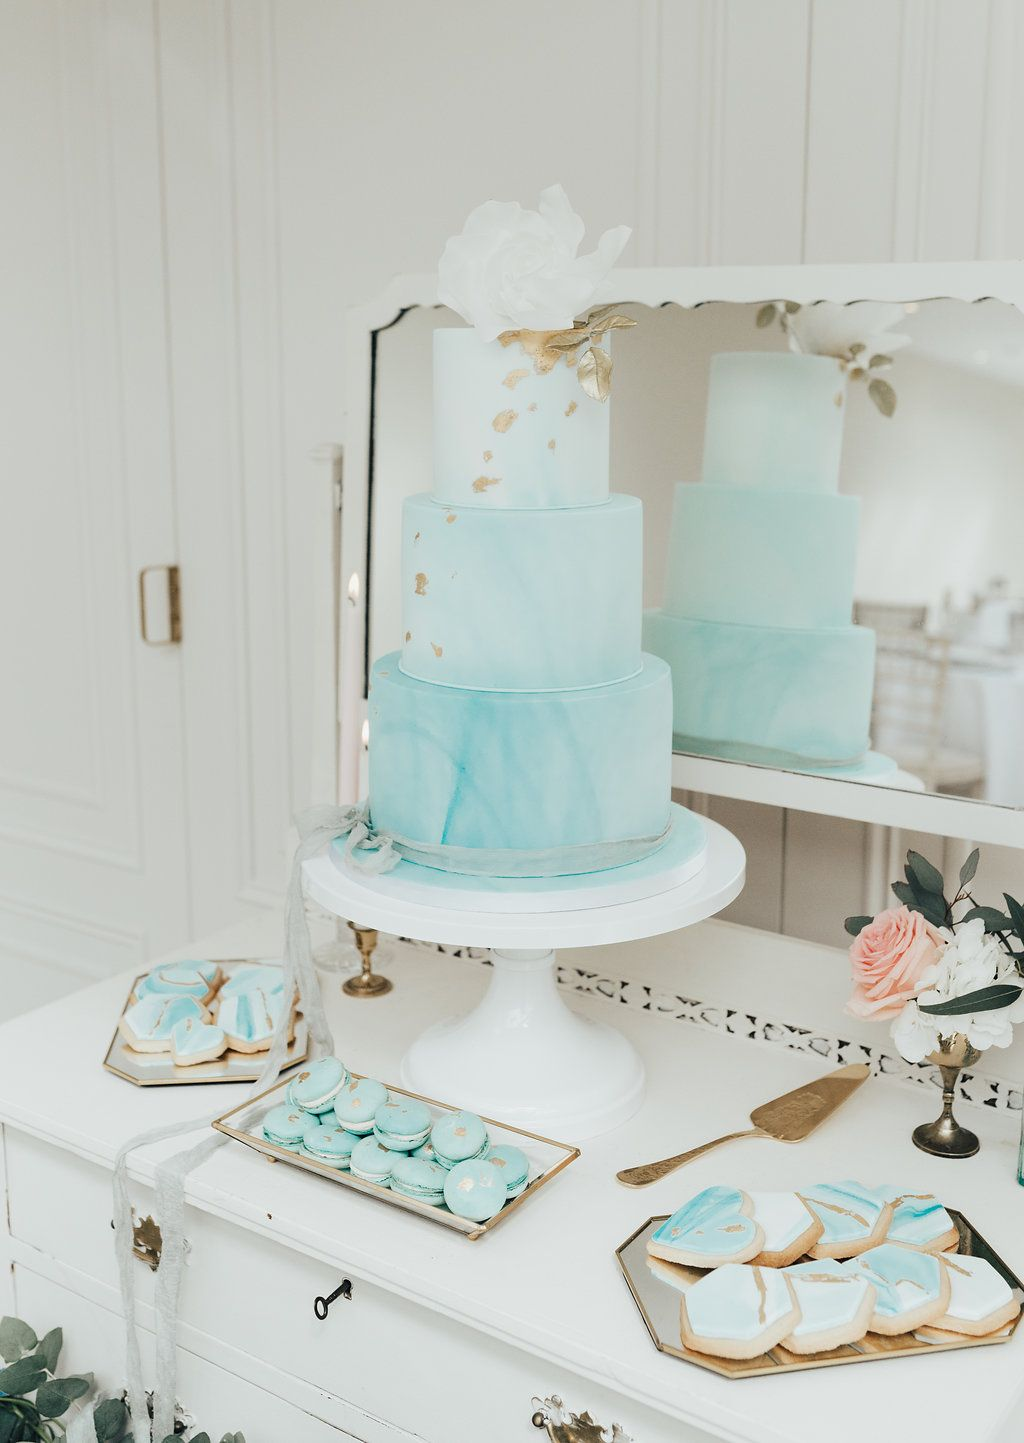 Dessert Table 3 Tier Blue Marbled Wedding Cake Decorated With